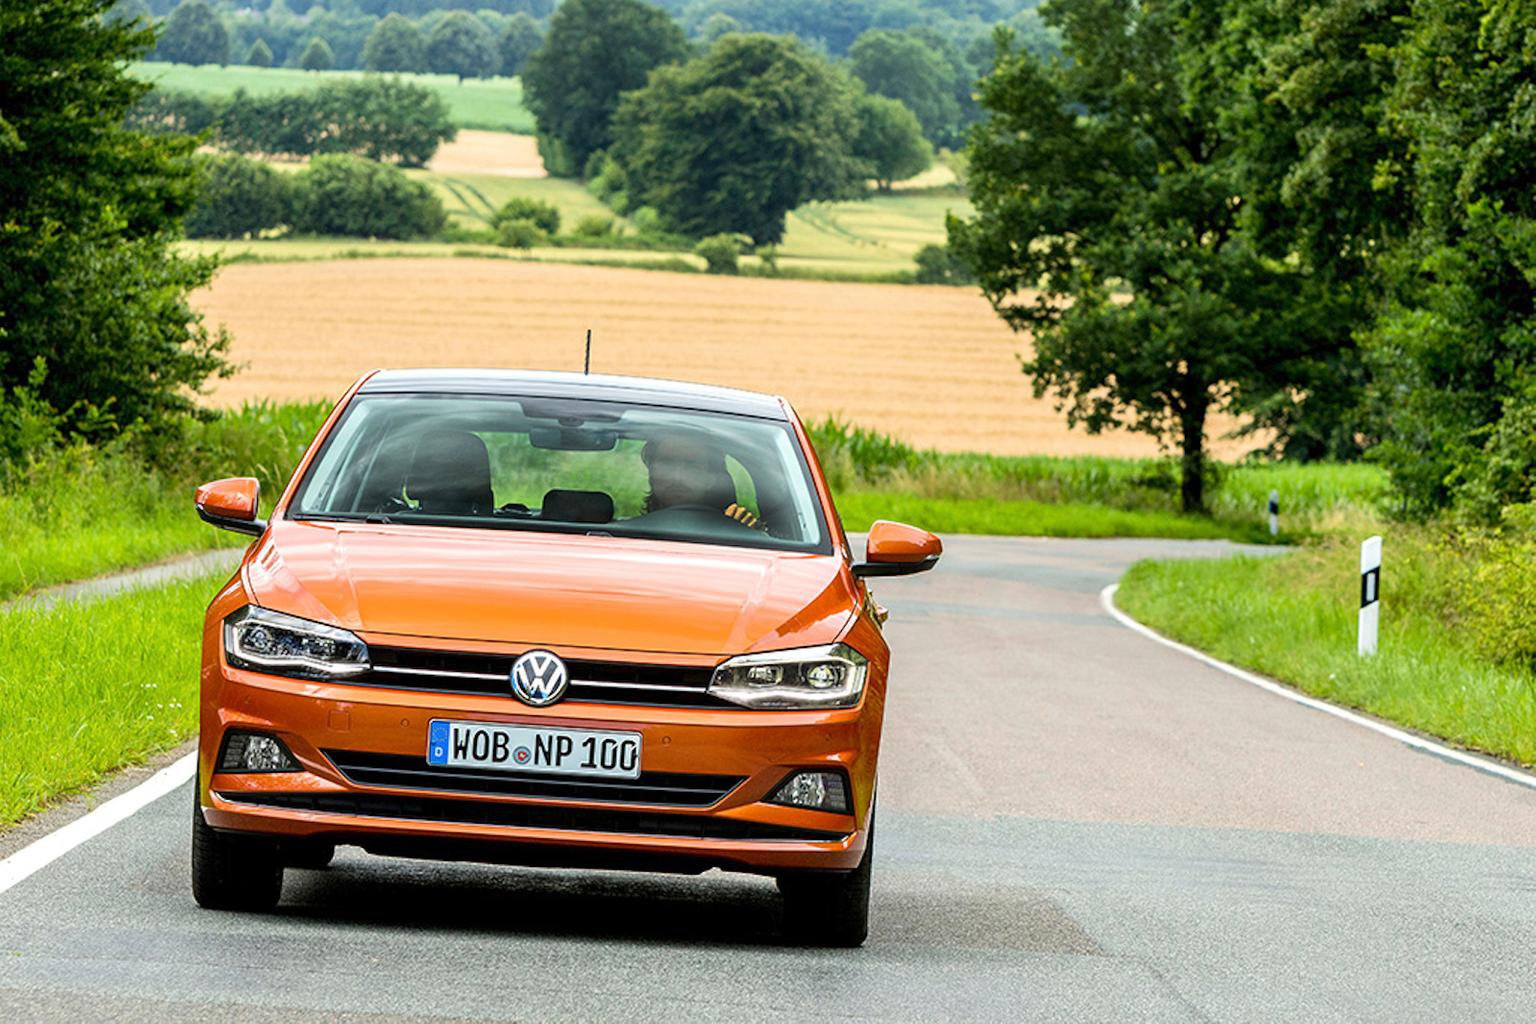 2017 Volkswagen Polo review – verdict